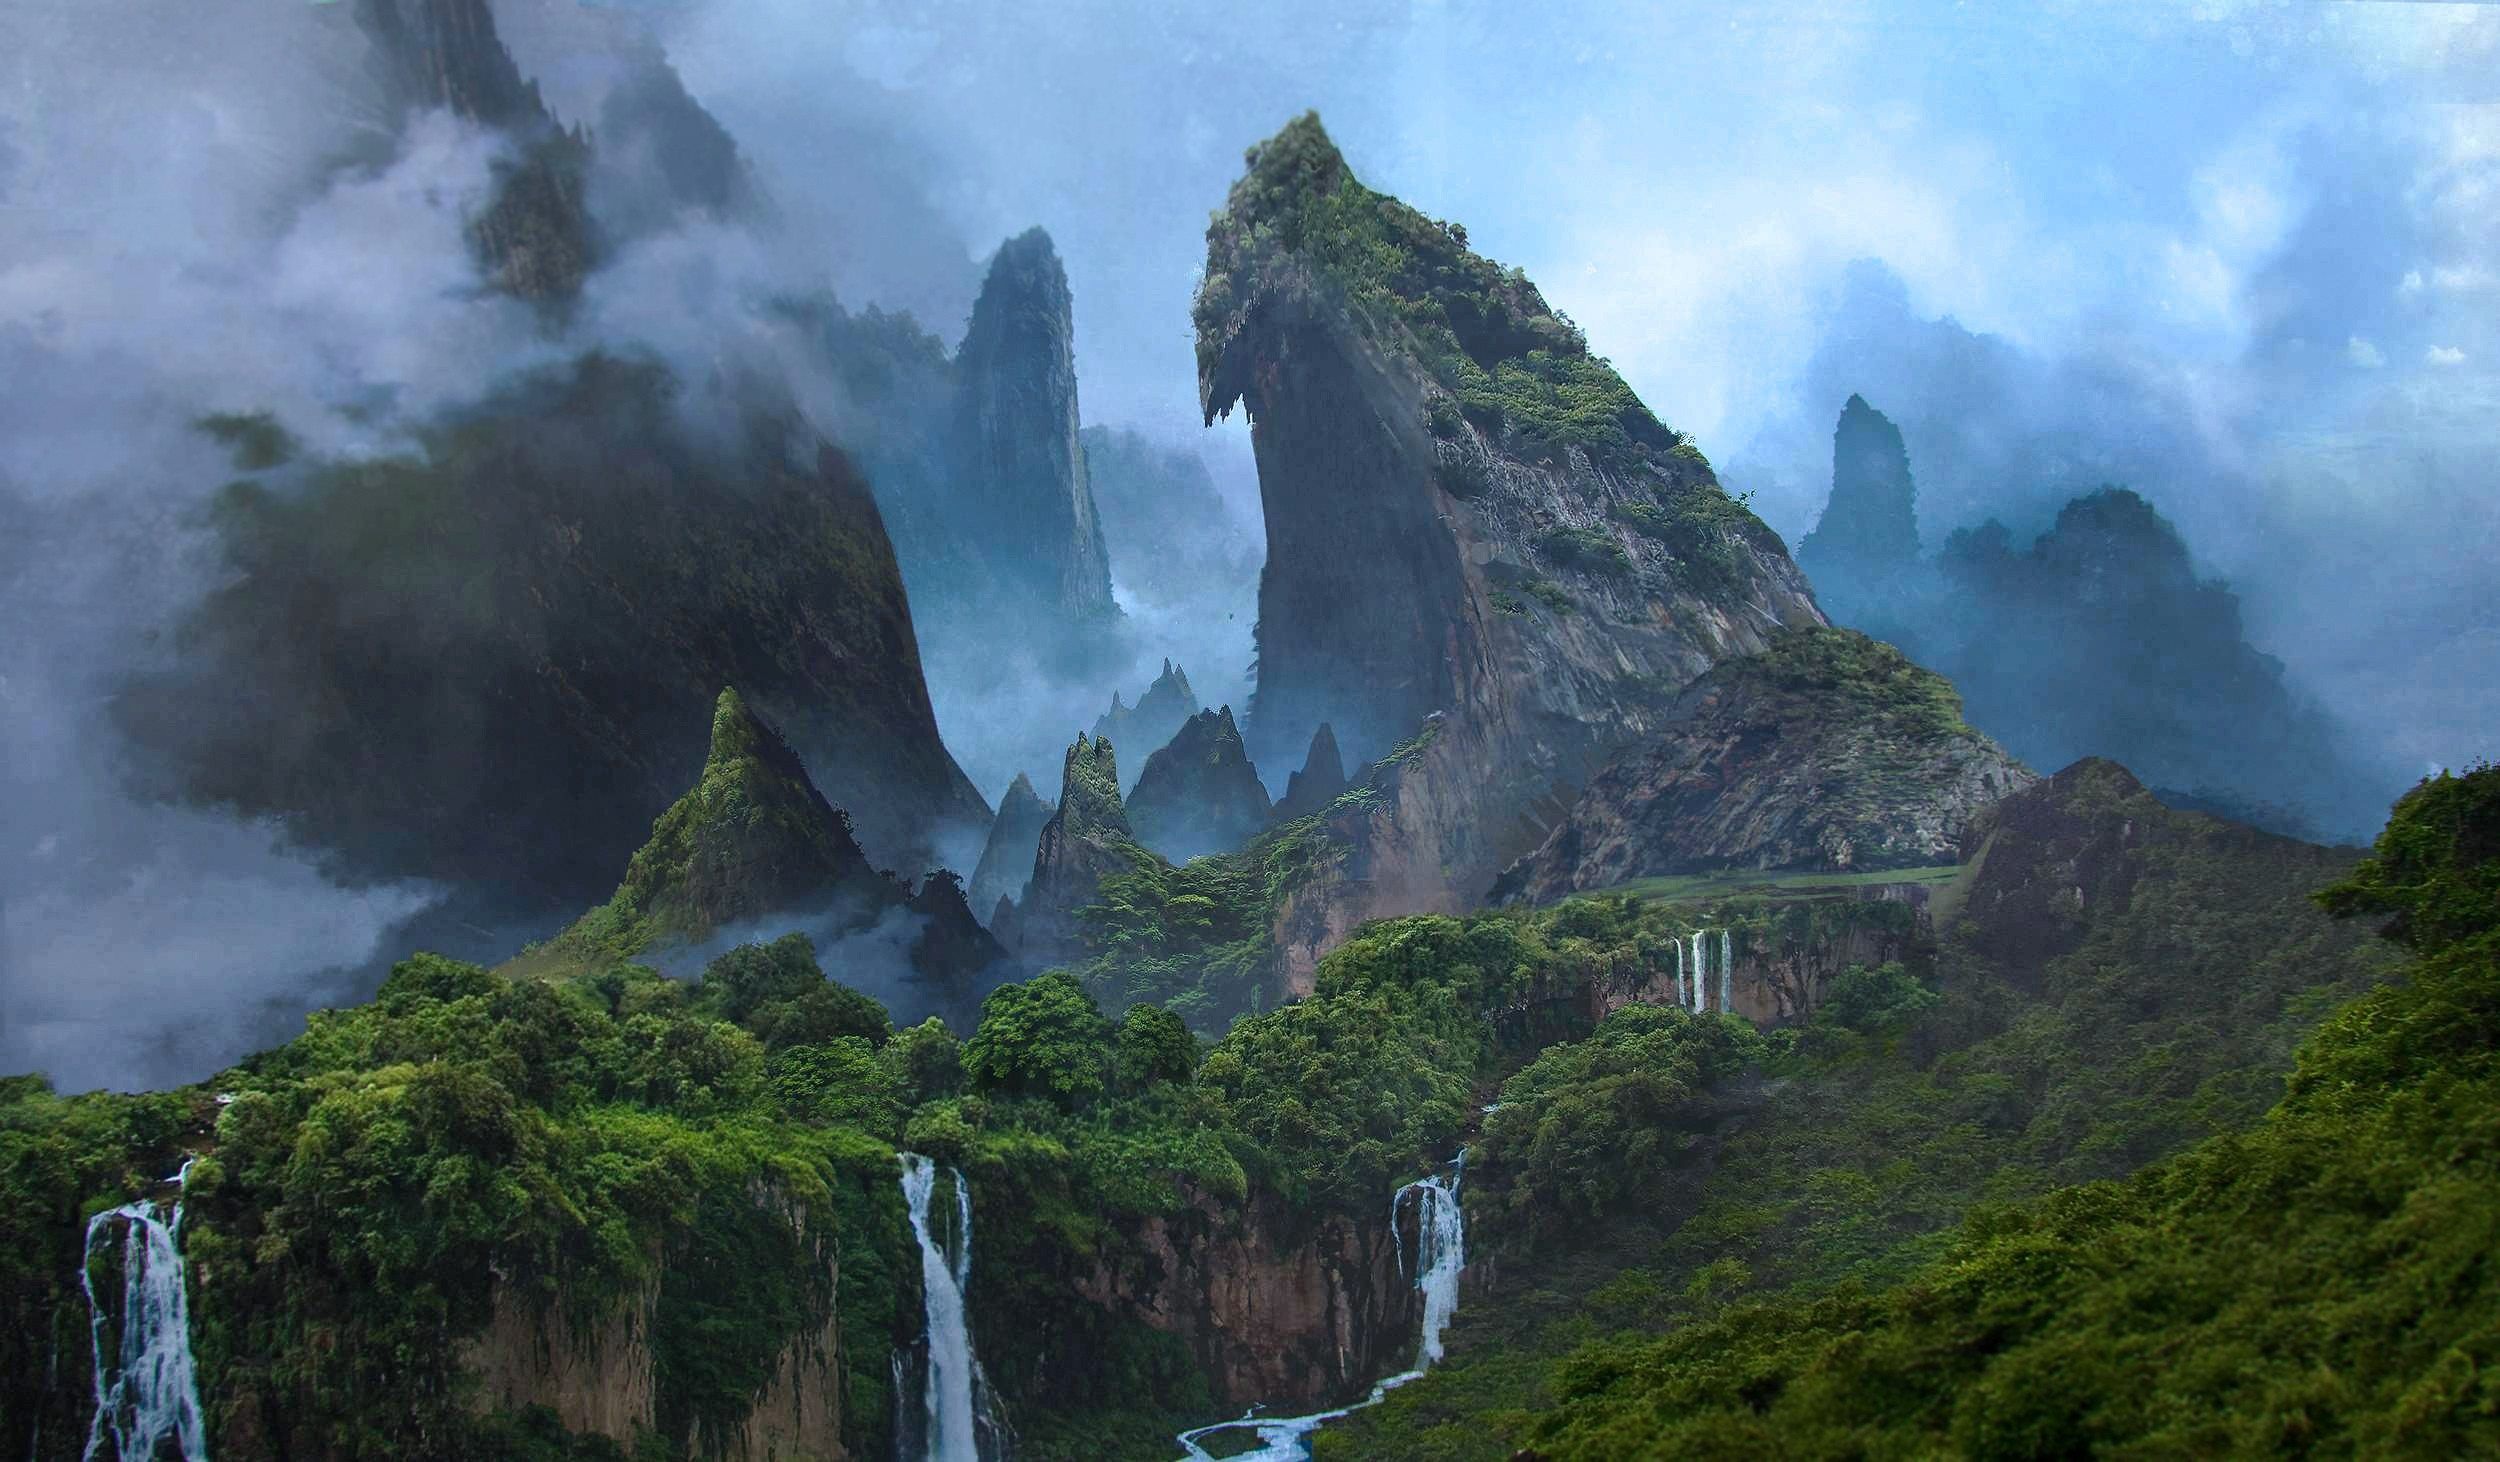 Uncharted 4 Madagascar Hd Wallpaper From Gallsource Com